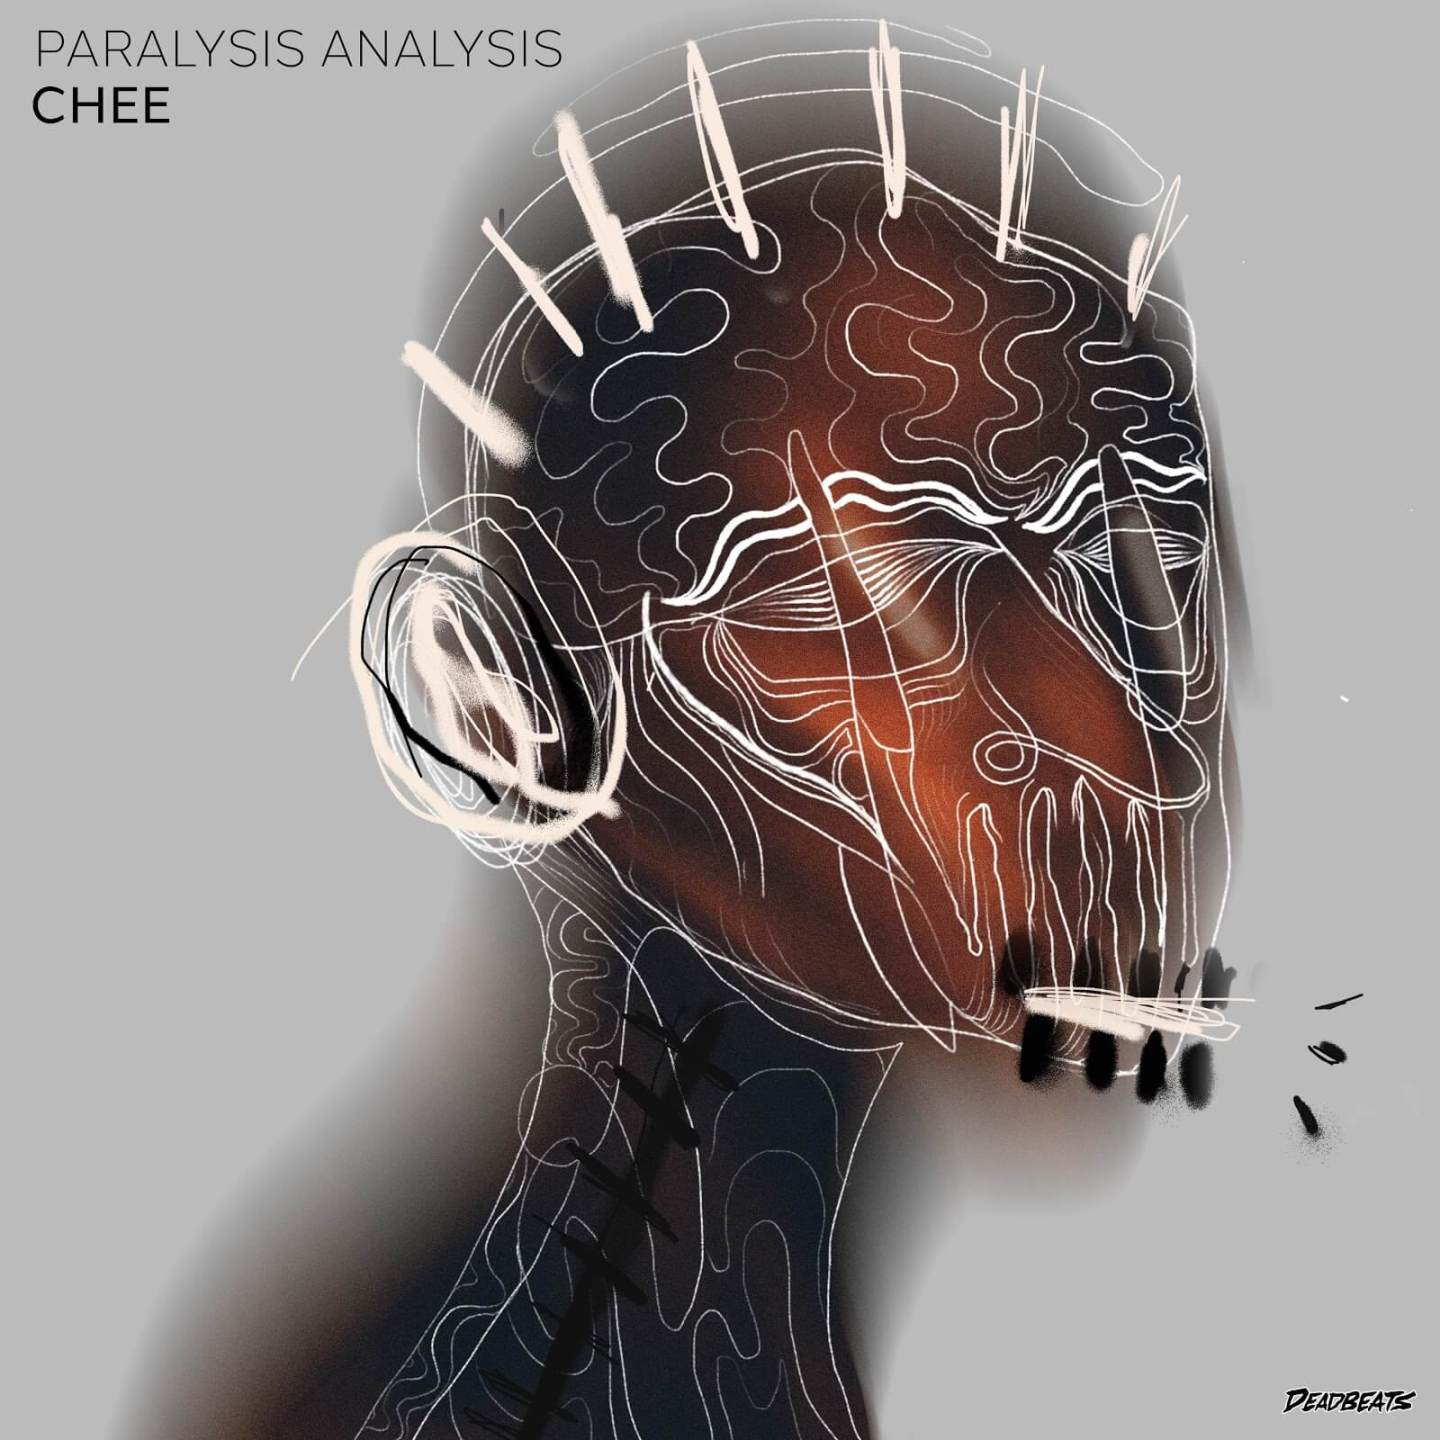 Chee Paralysis Analysis